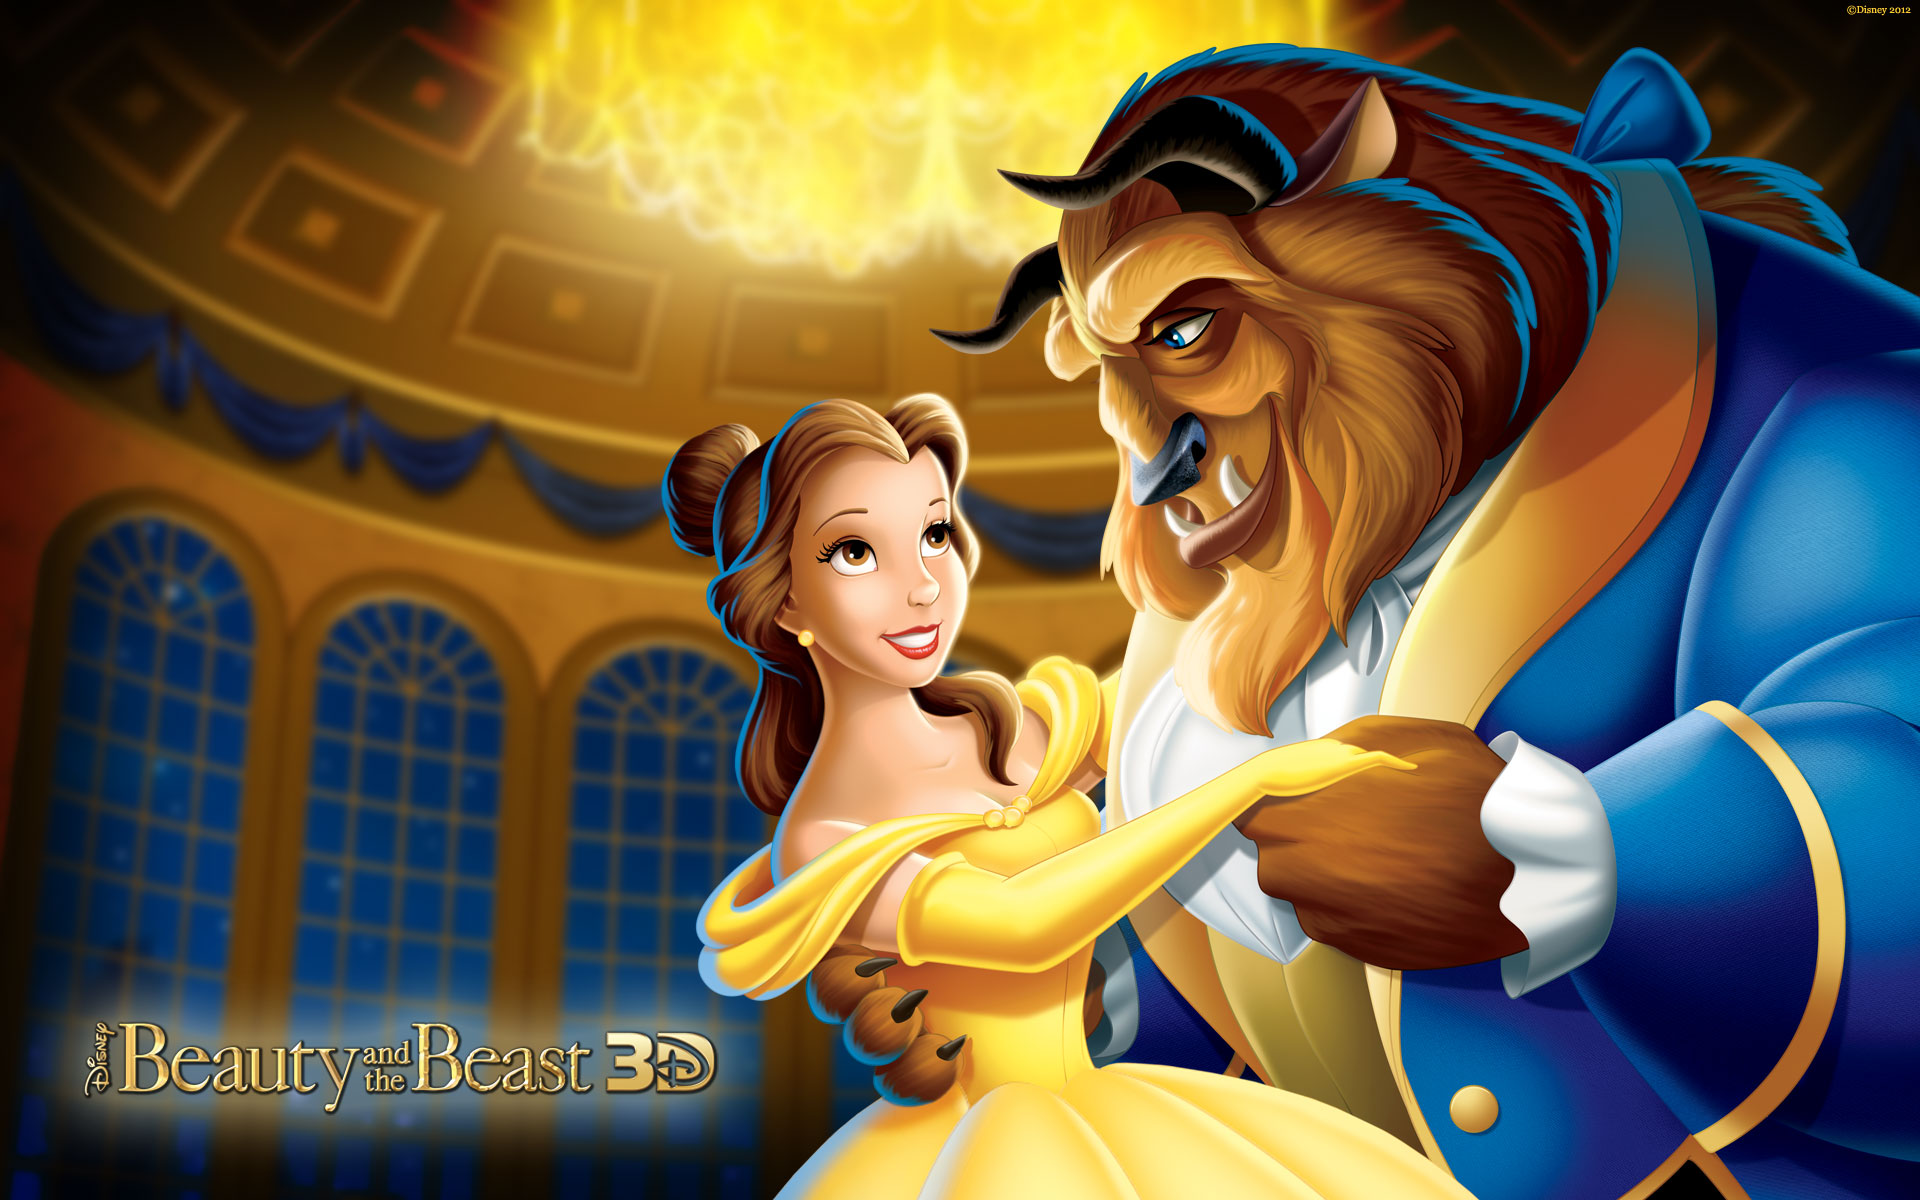 beauty-and-the-beast-3d-disney-princess-34653649-1920-1200